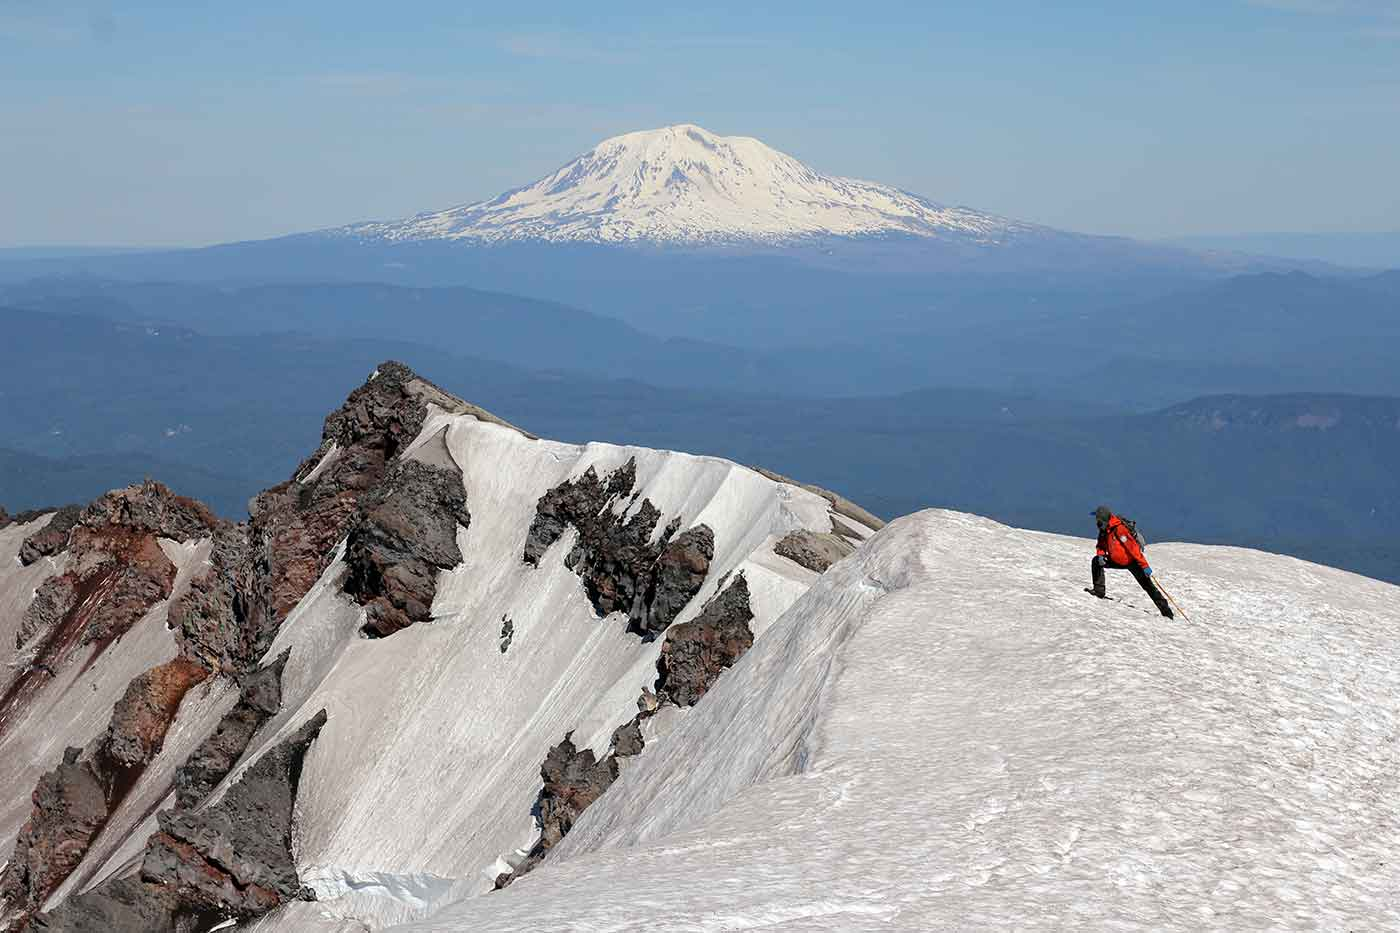 mt st helen Mount st helens is rumbling again, but it's not the volcano that worries washington state seismologists the most a 39-magnitude jolt wednesday morning, about 11 km northeast of the volcano, was the strongest tremor in the seismically active area since 1981 it was followed by a swarm of up to 150.